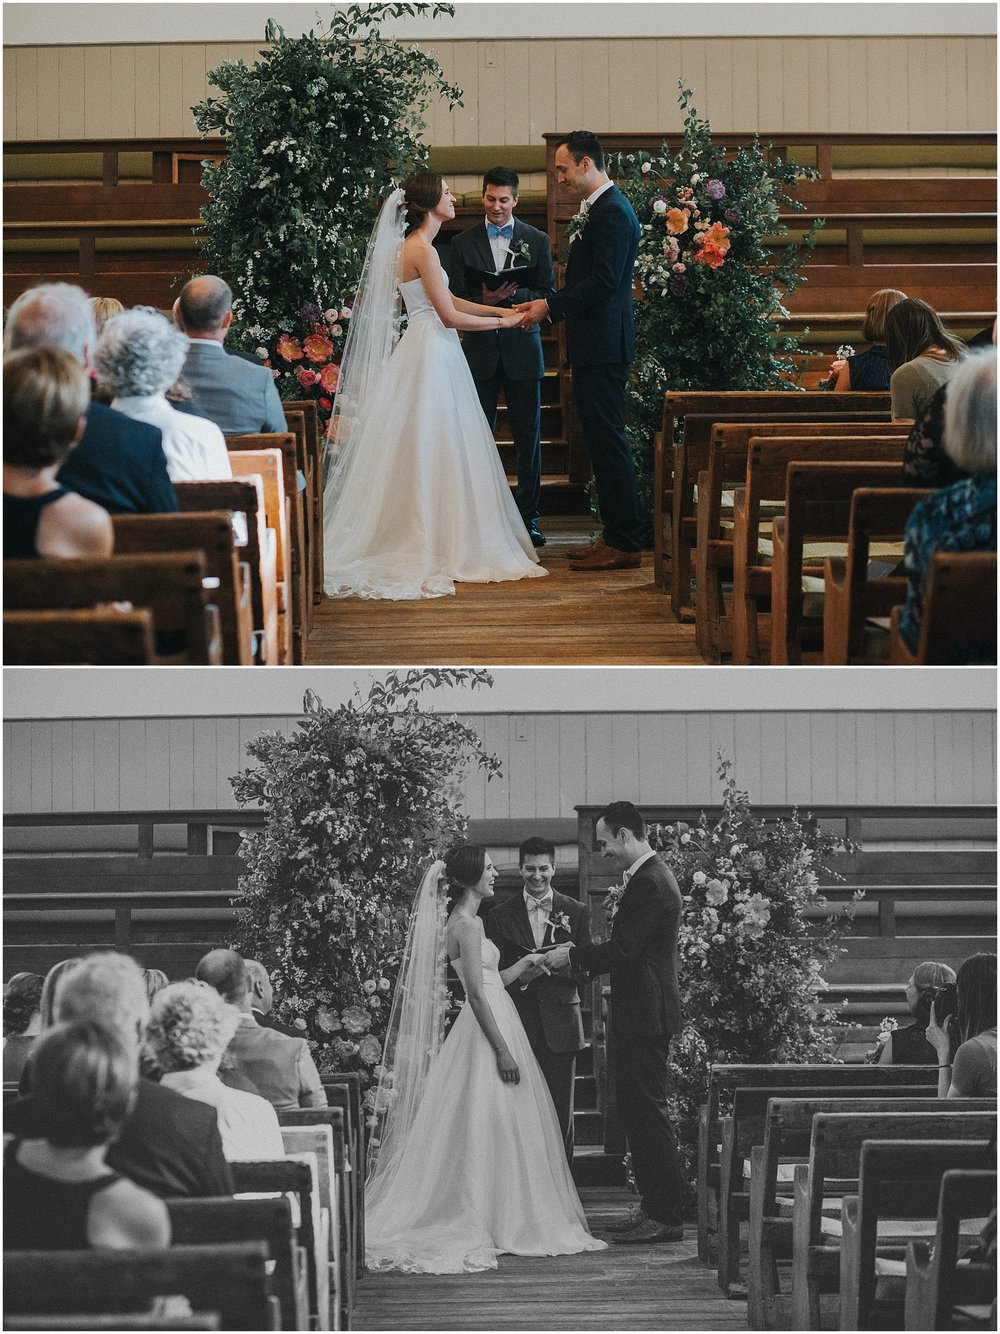 Wedding ceremony at Arch Street Meeting House in Philadelphia Pennsylvania